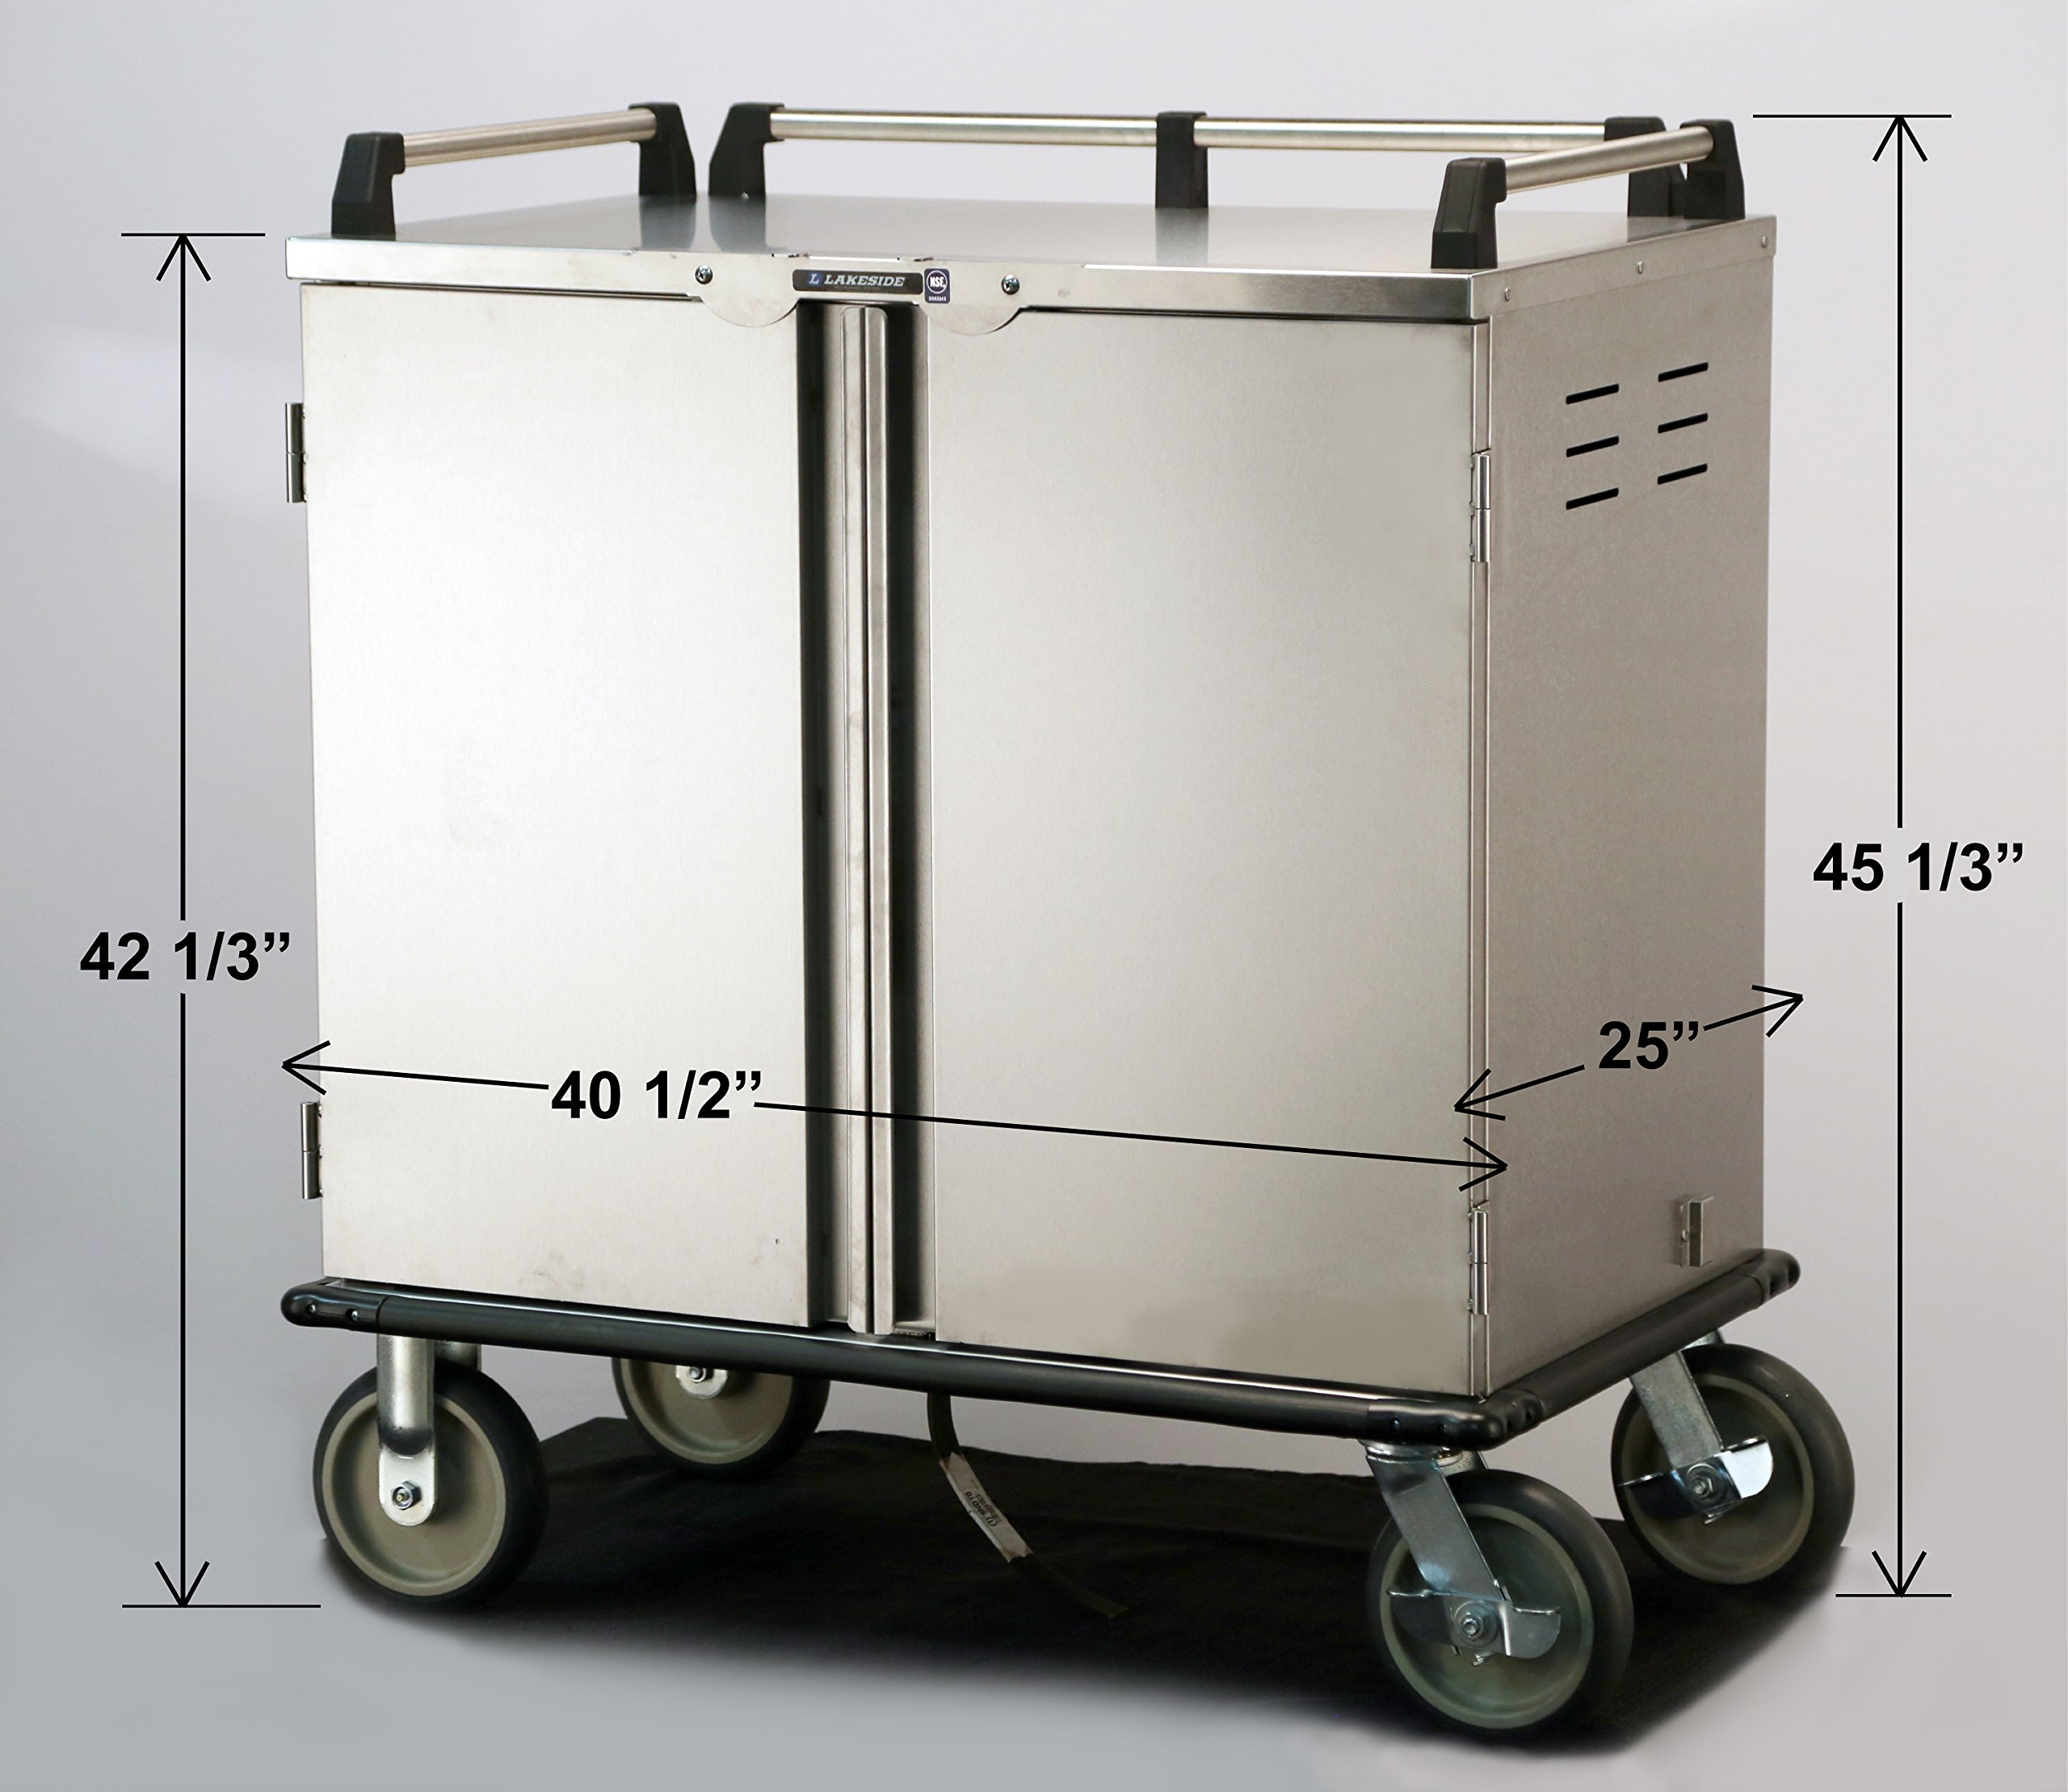 Lakeside 5510, Elite Series, Enclosed Room Service, Tray Delivery Cart; Stainless Steel, 12 Tray Capacity, 32-1/4'' x 36-3/4'' x 48-3/4'' by Lakeside (Image #3)